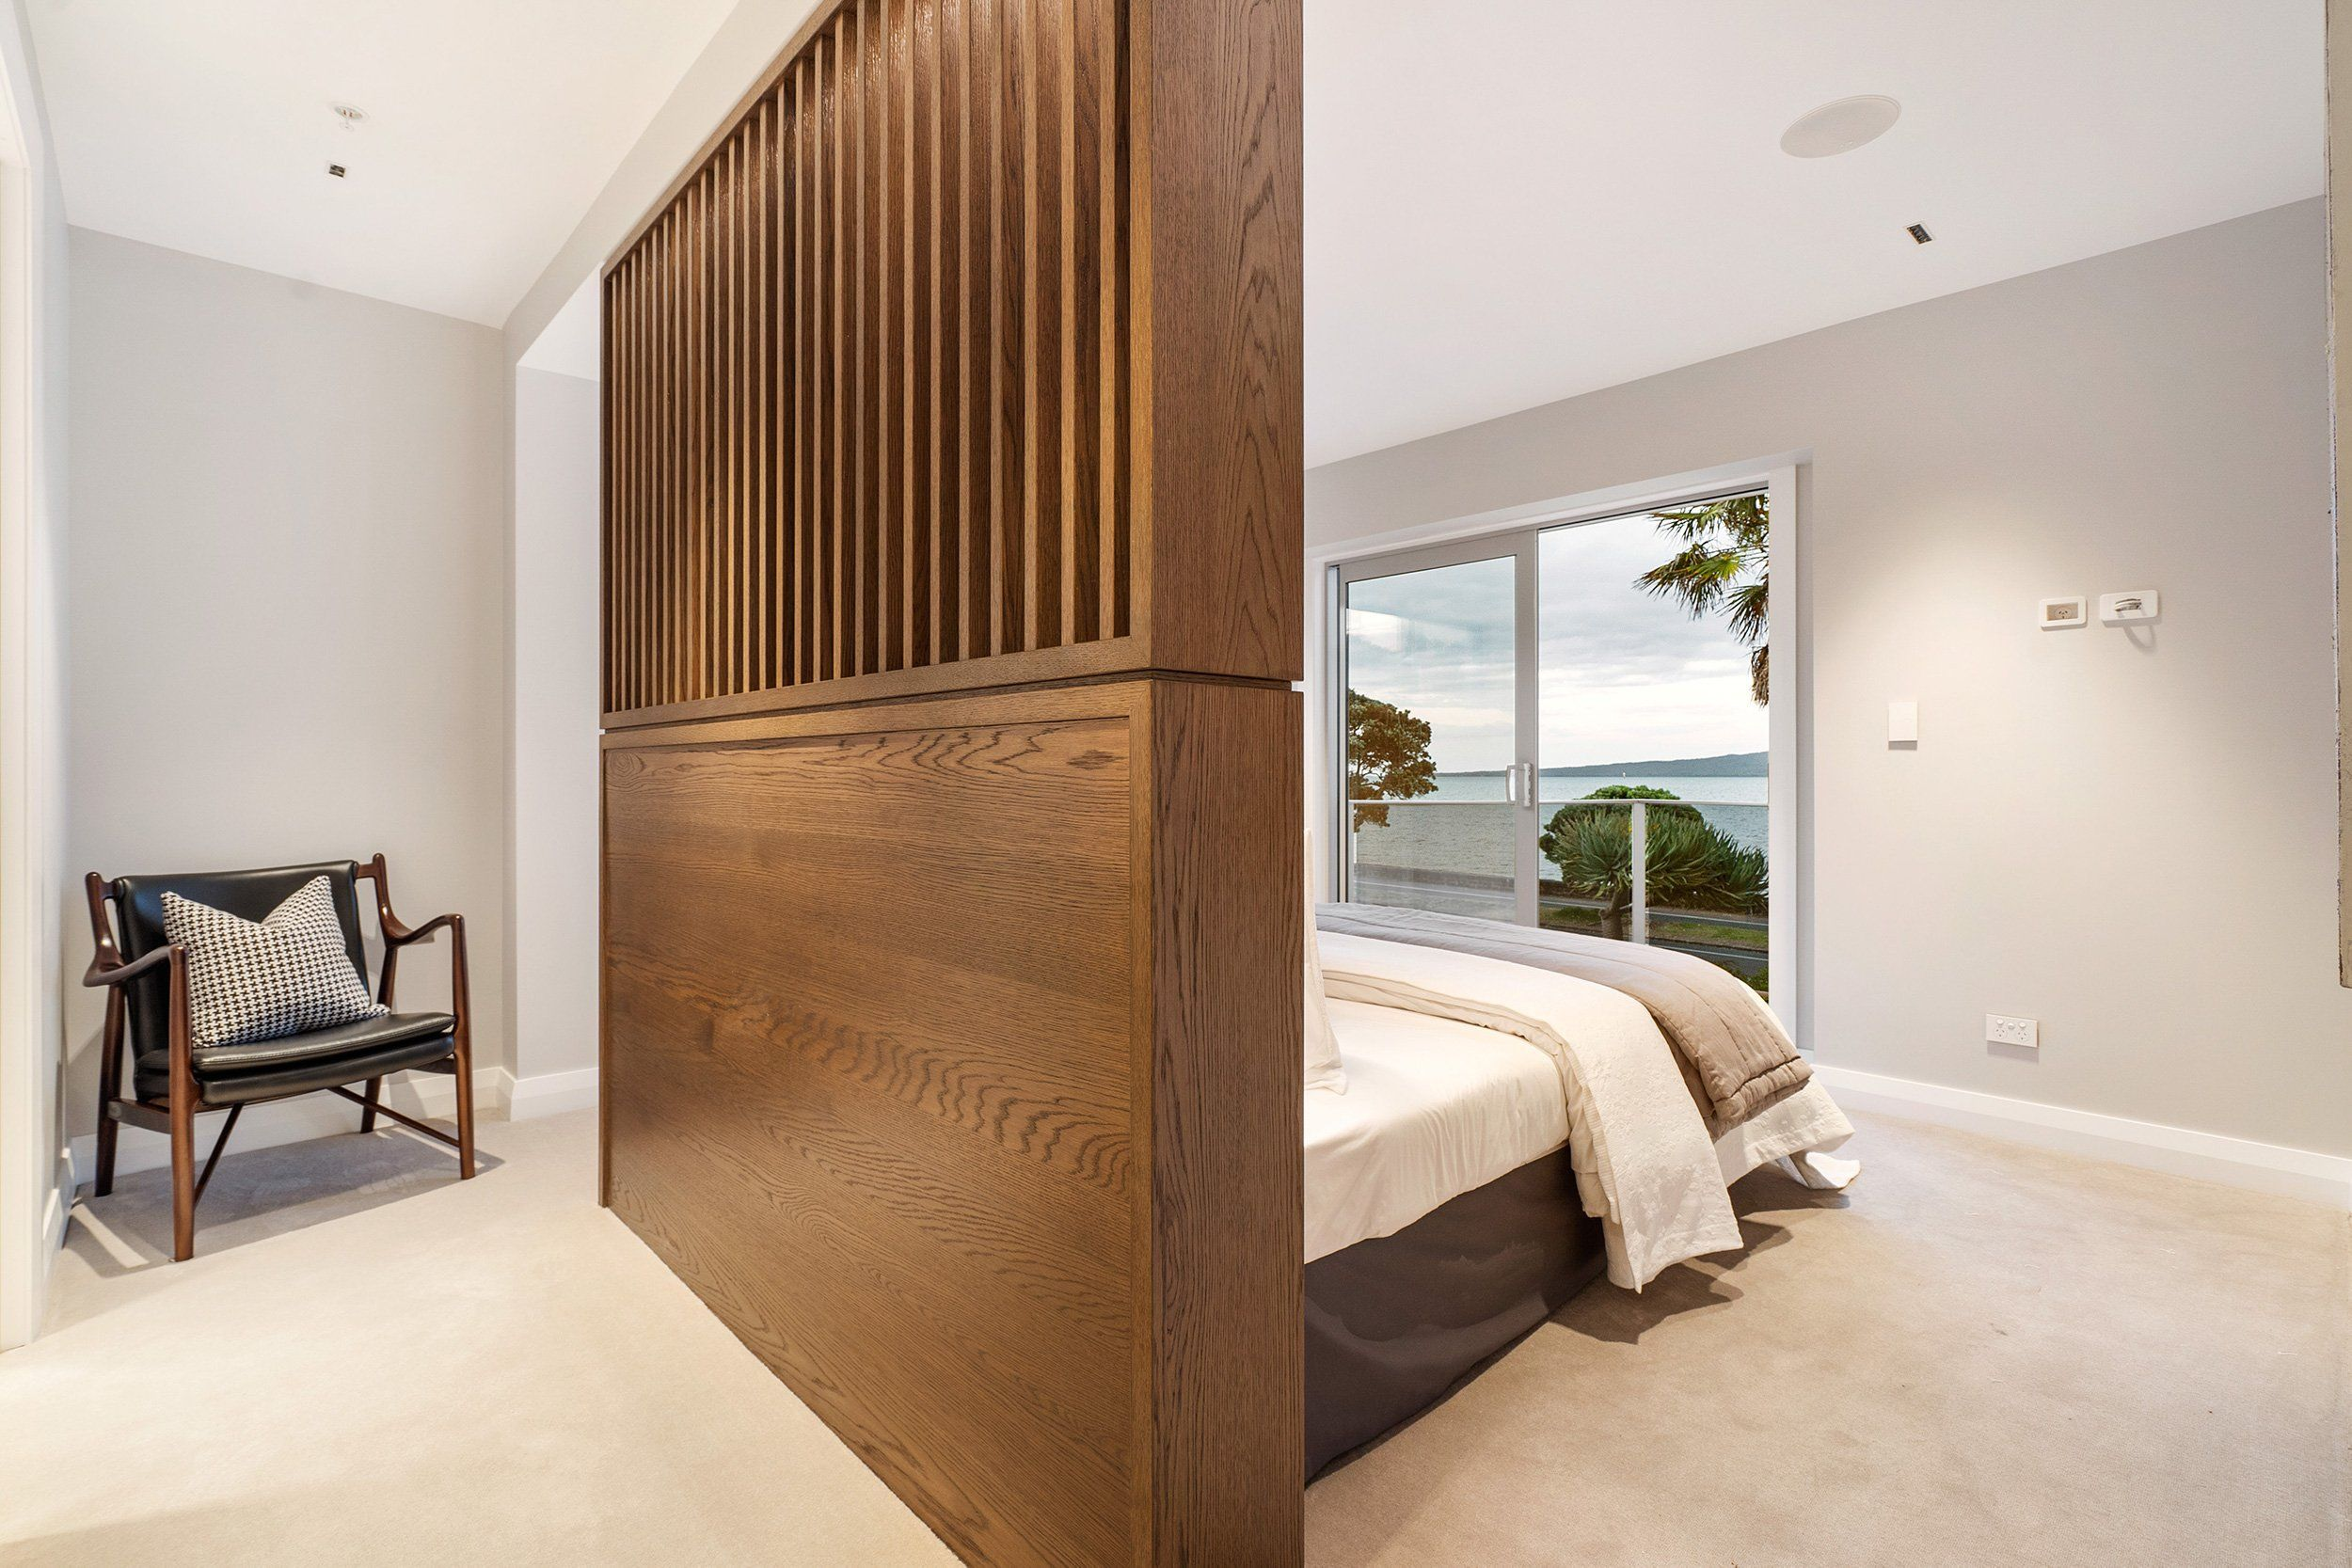 Wooden headboard and panelling